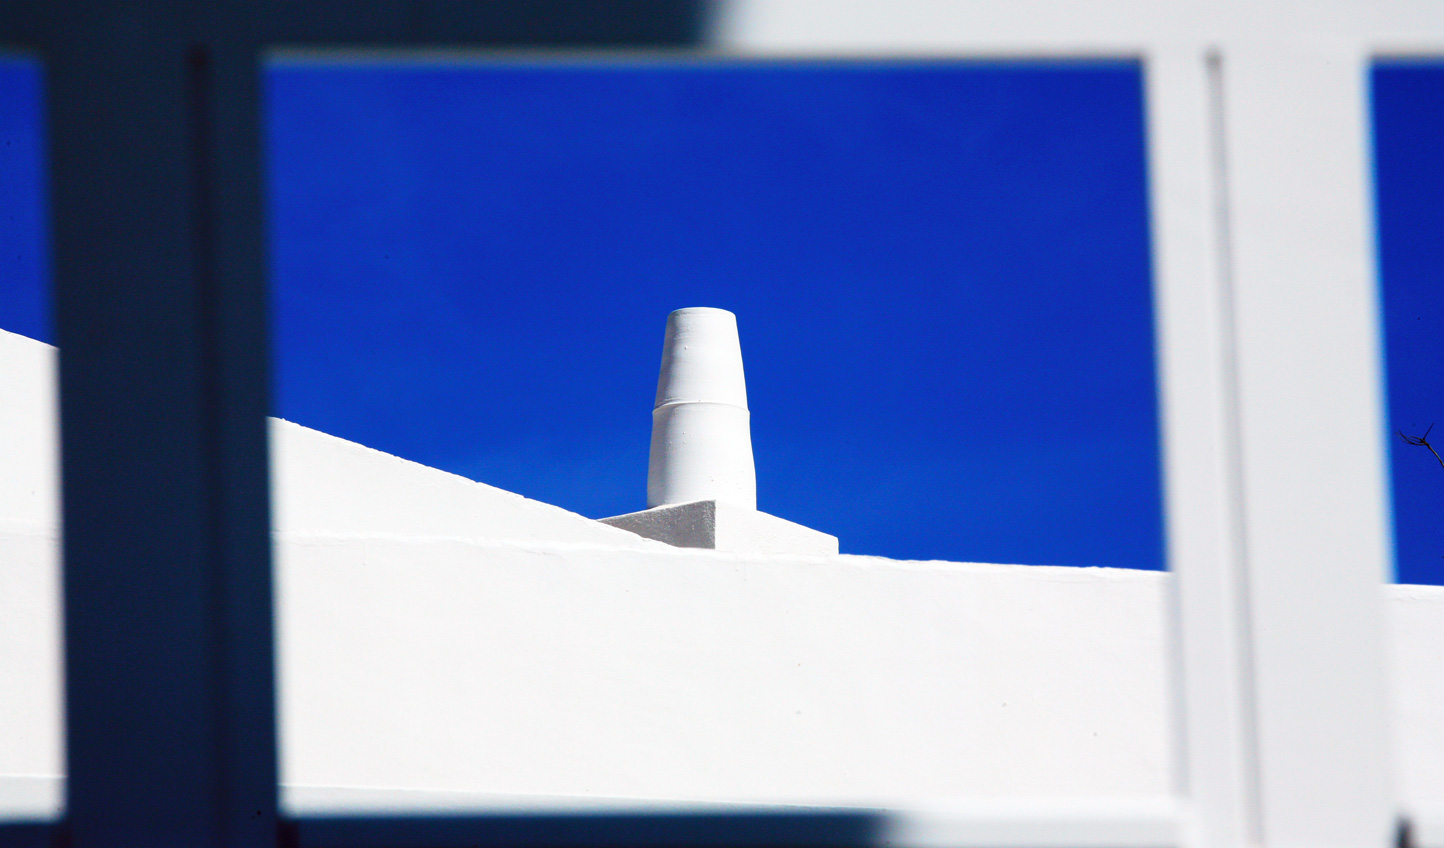 Expect typical white Greek buildings set against a clear blue sky